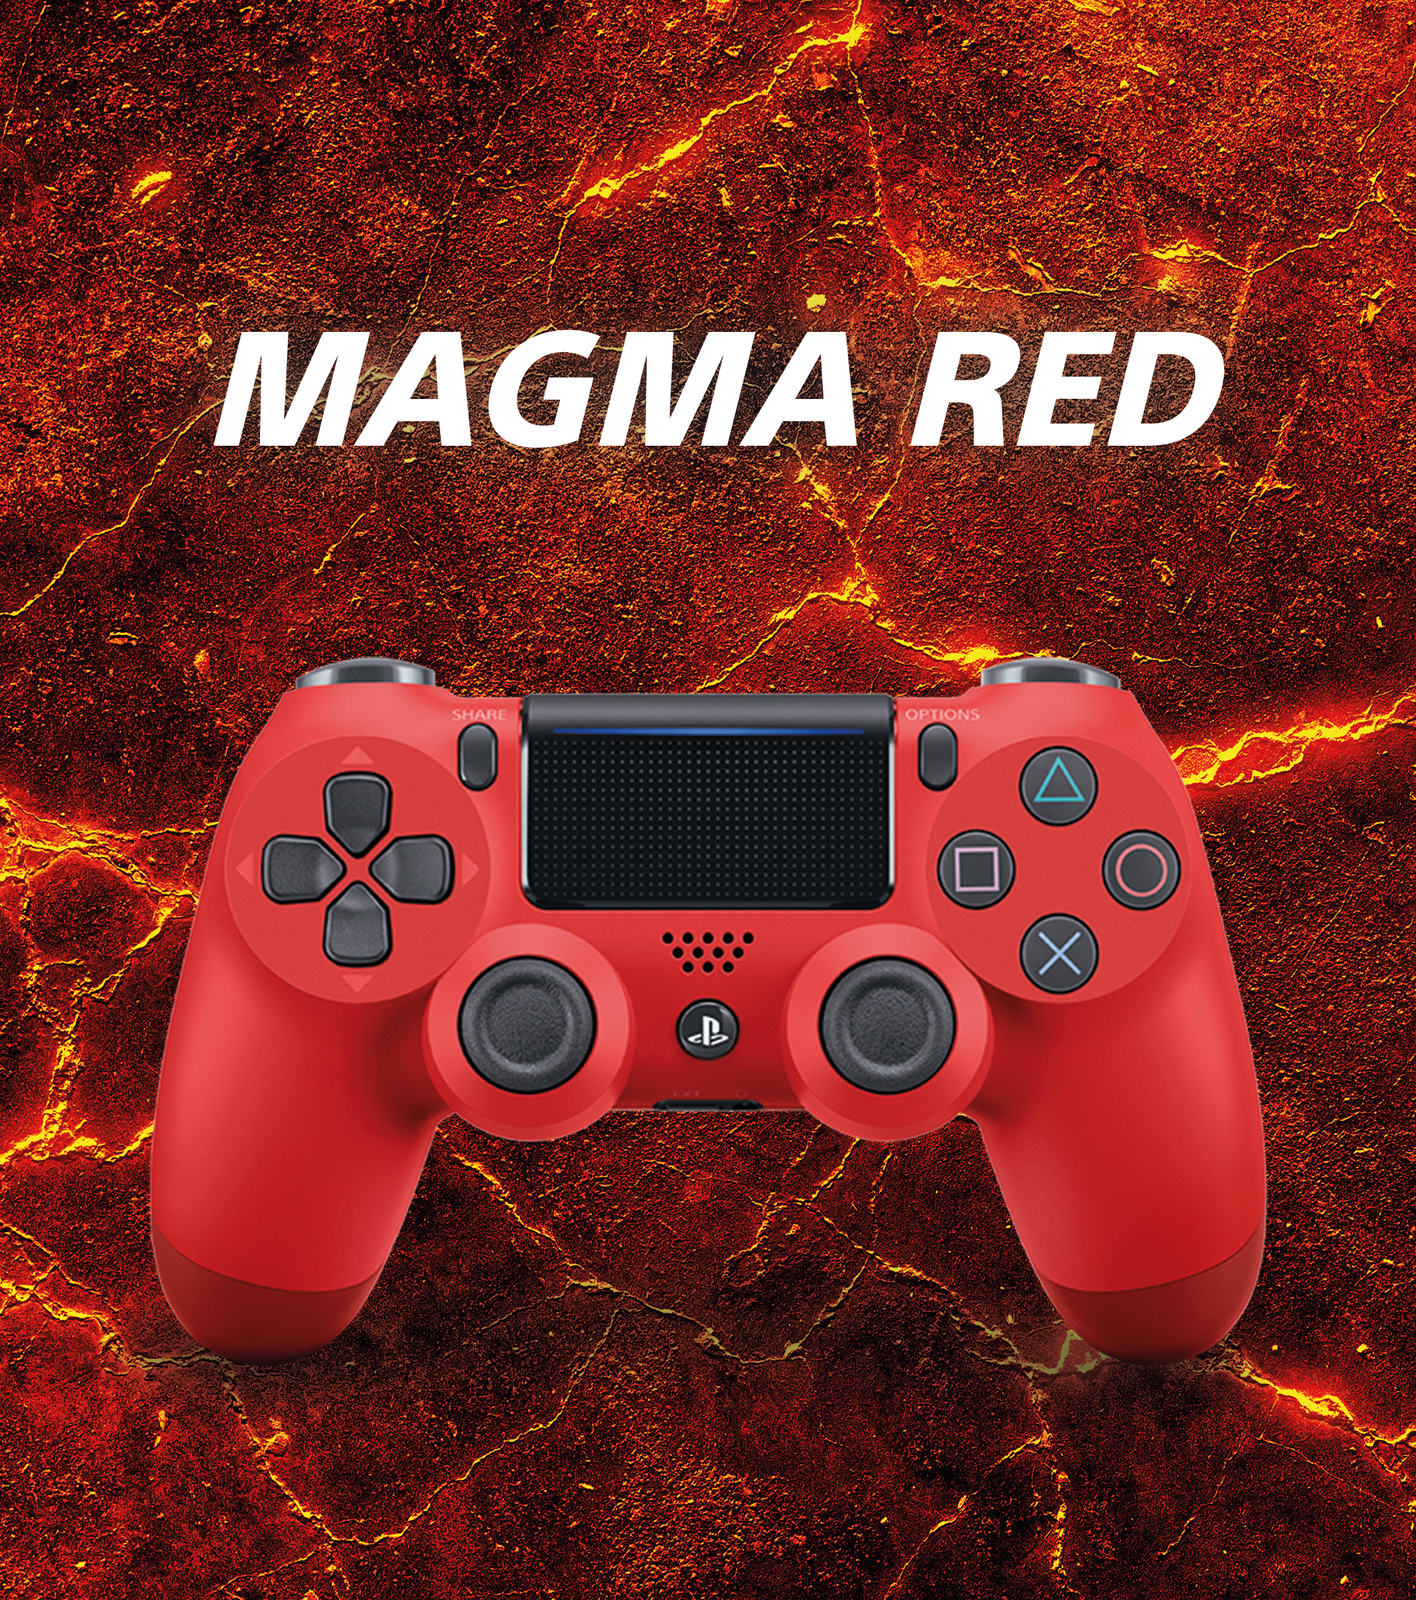 PlayStation 4 DualShock 4 v2 Wireless Controller - Magma Red for PS4 image